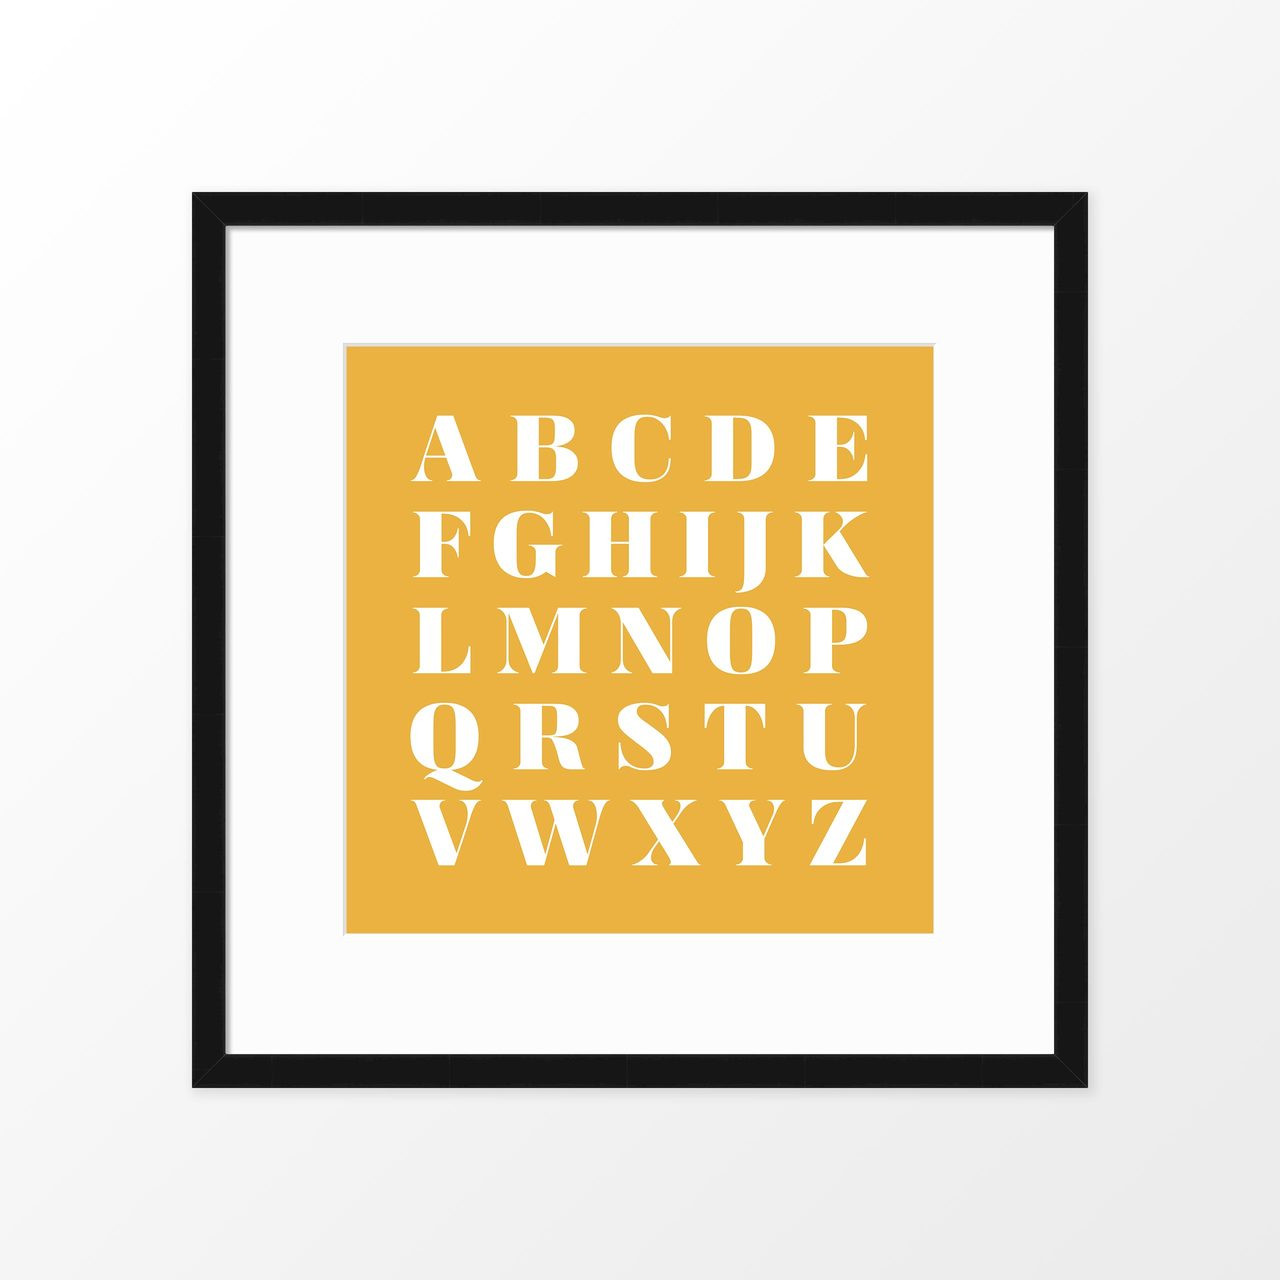 Alphabet Square Kids Poster / Framed Art Print from The Printed Home (Printable)